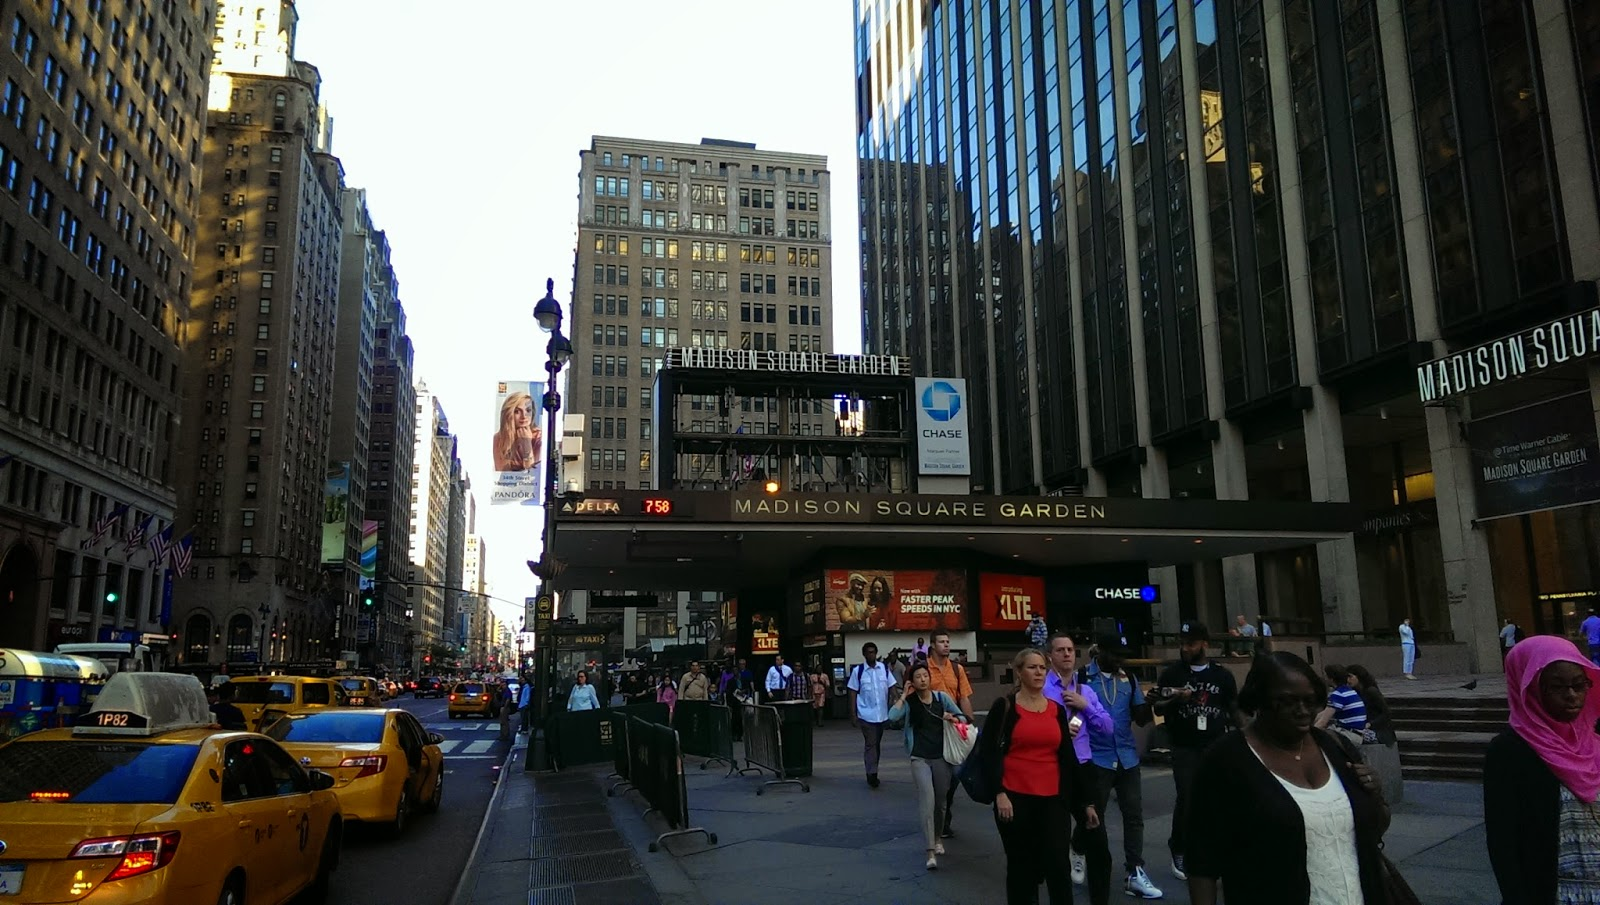 Madison Square Garden: Madison Square Garden Outdoor Screen Being Repaired Or